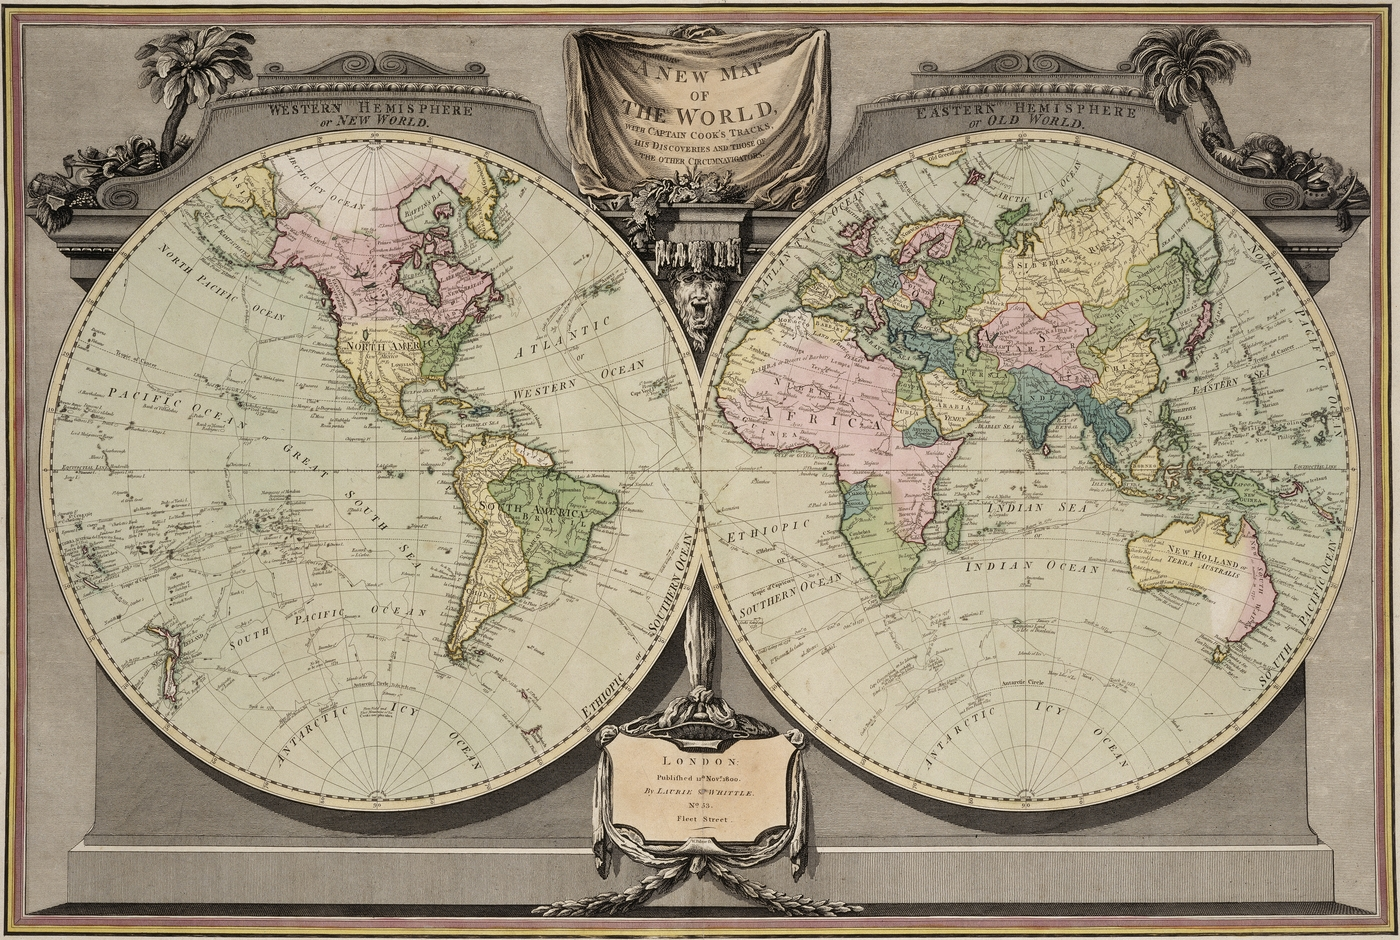 A New Map Of The World With Captain Cooks Tracks His Discoveries - 1800s world map